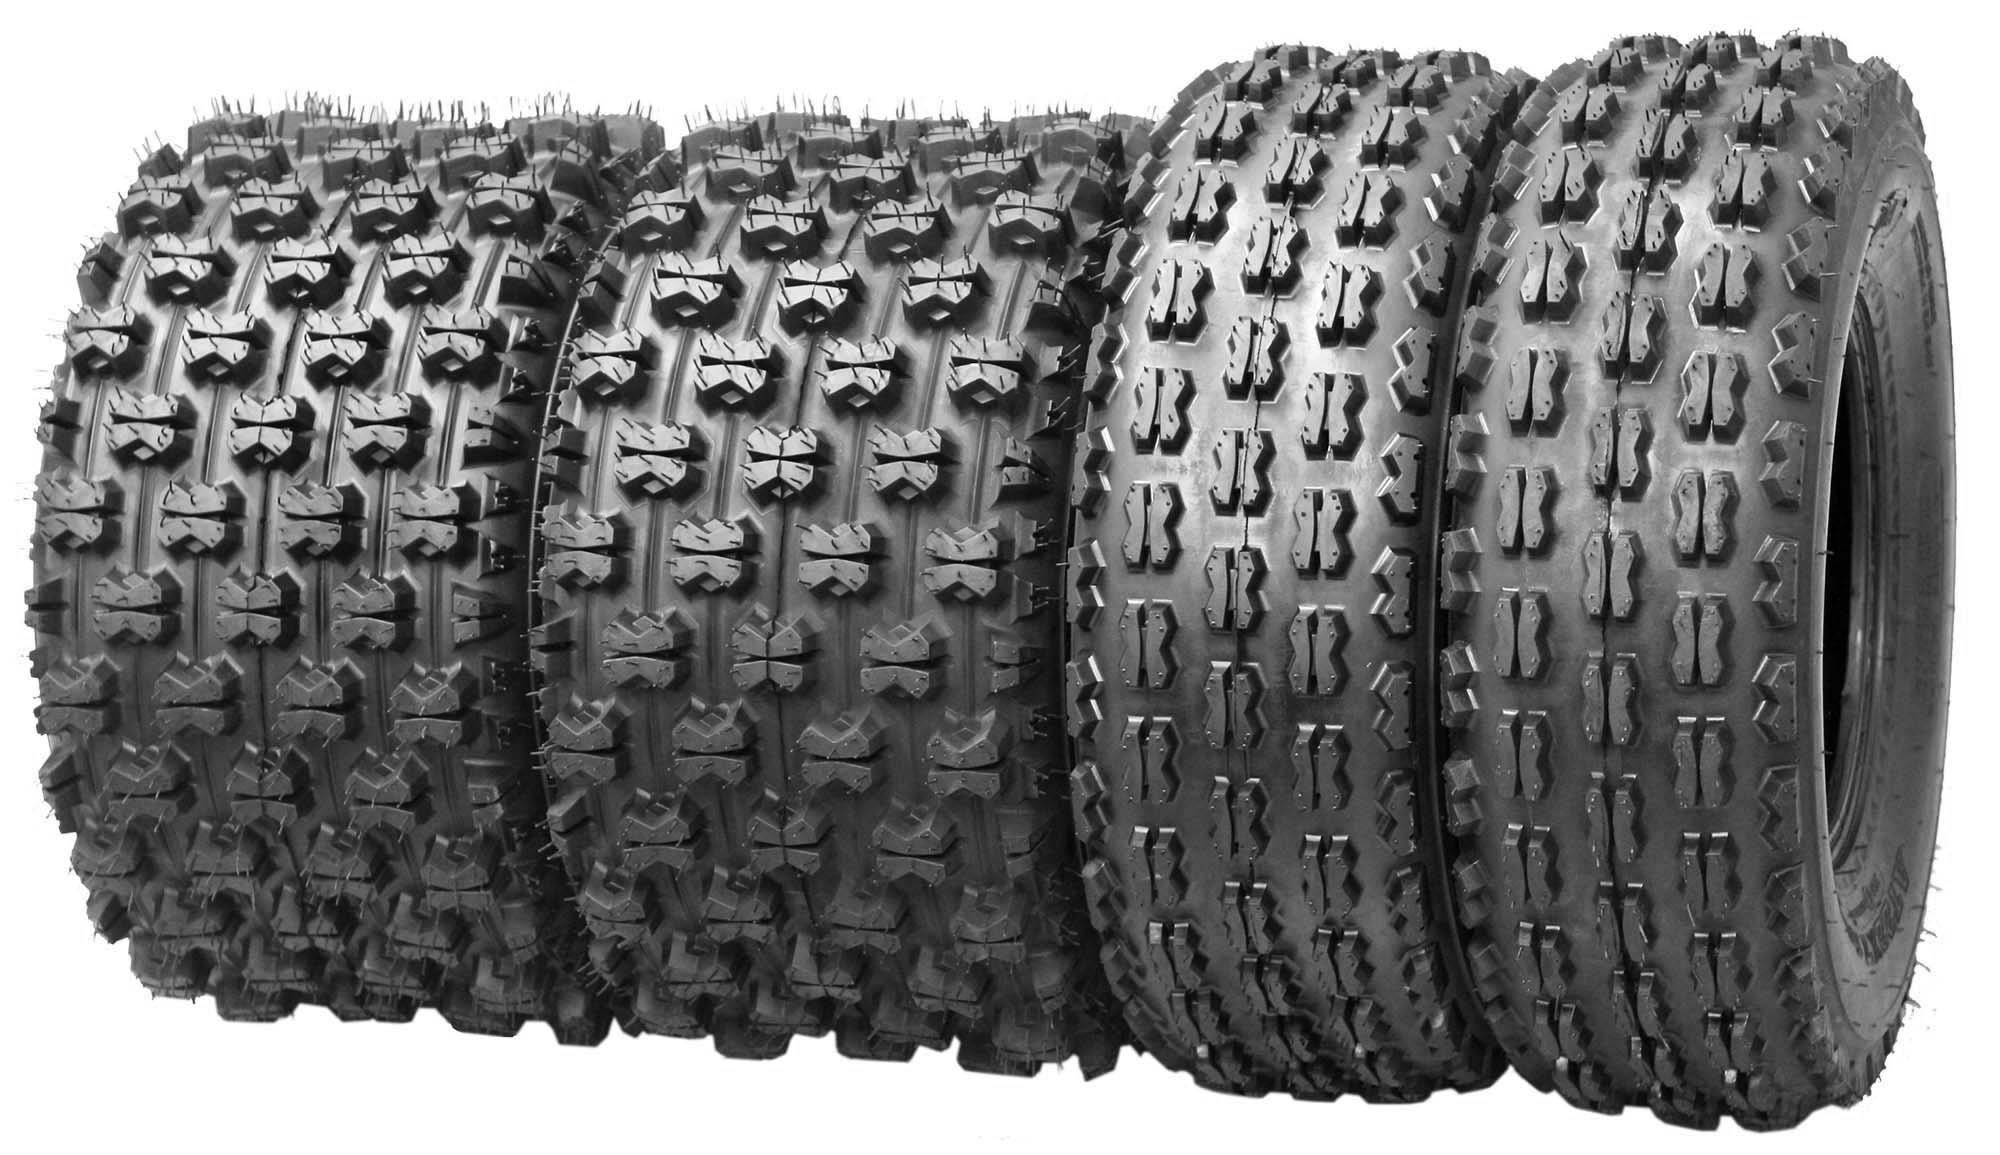 Set of 4 New Sport ATV Tires 22x7-10 Front & 22x10-10 Rear /4PR - 10077/10089